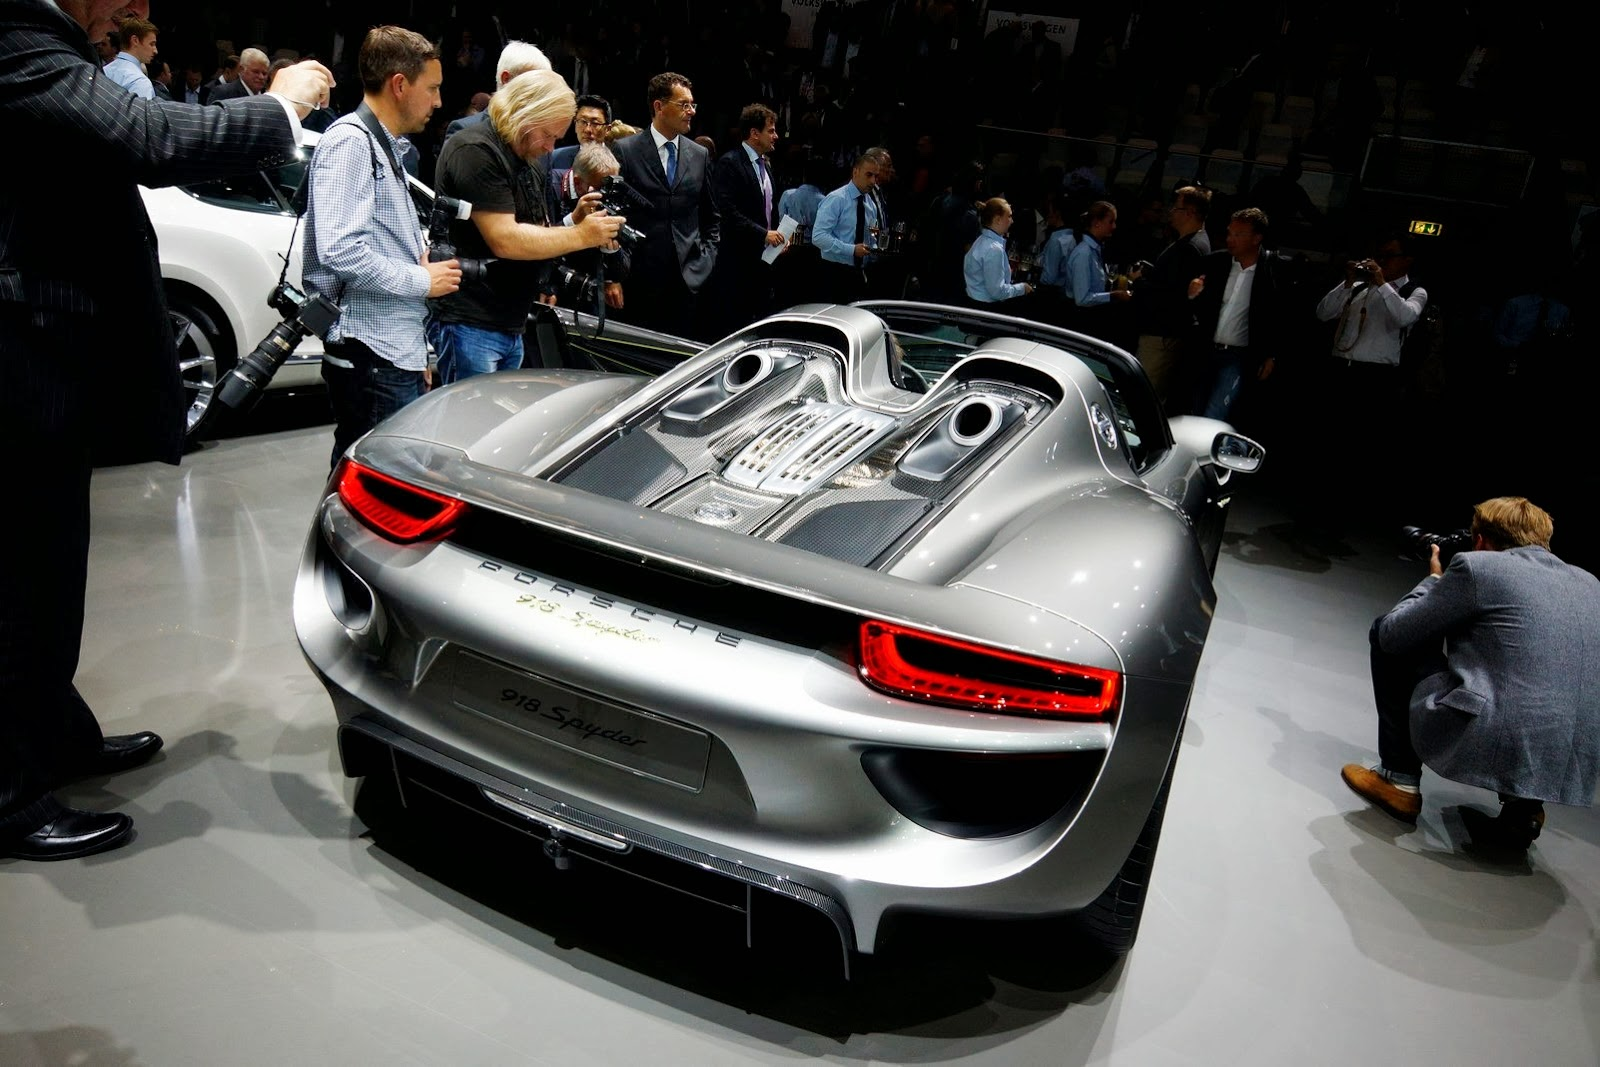 2015 porsche 918 spyder interior wallpaper 11 2019 porsche 918 spyder interior wallpapers